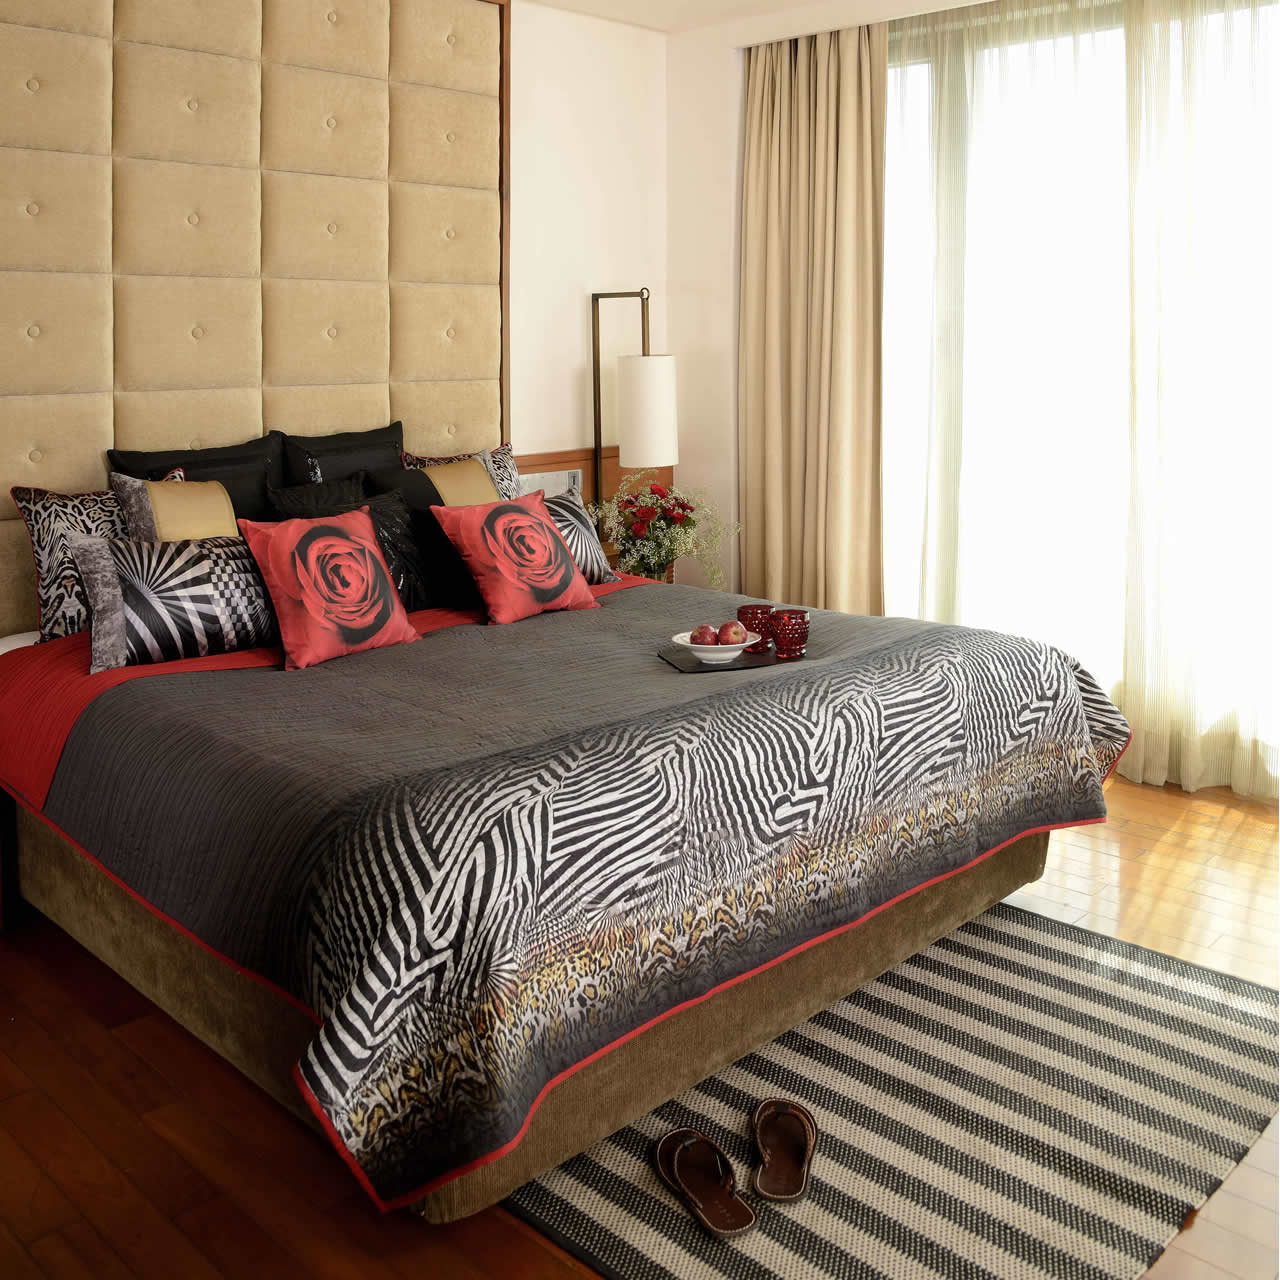 Home Decor: Satya Paul Launches Its First Ever Home Decor Line